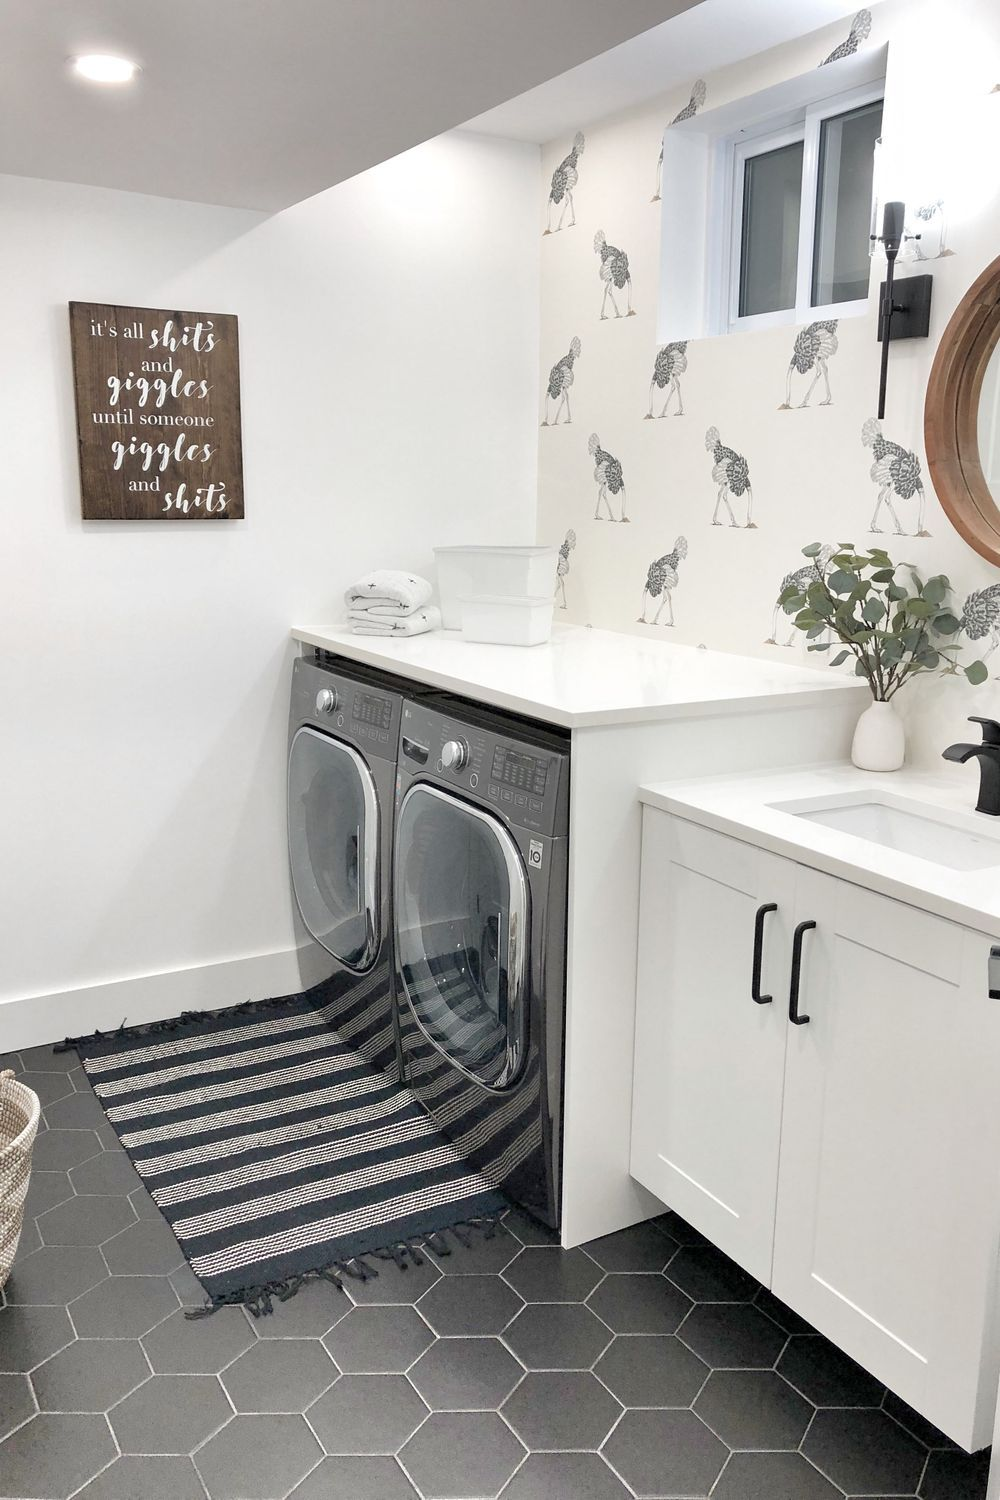 Floor Countertop Sink Laundry Room White Property In 2020